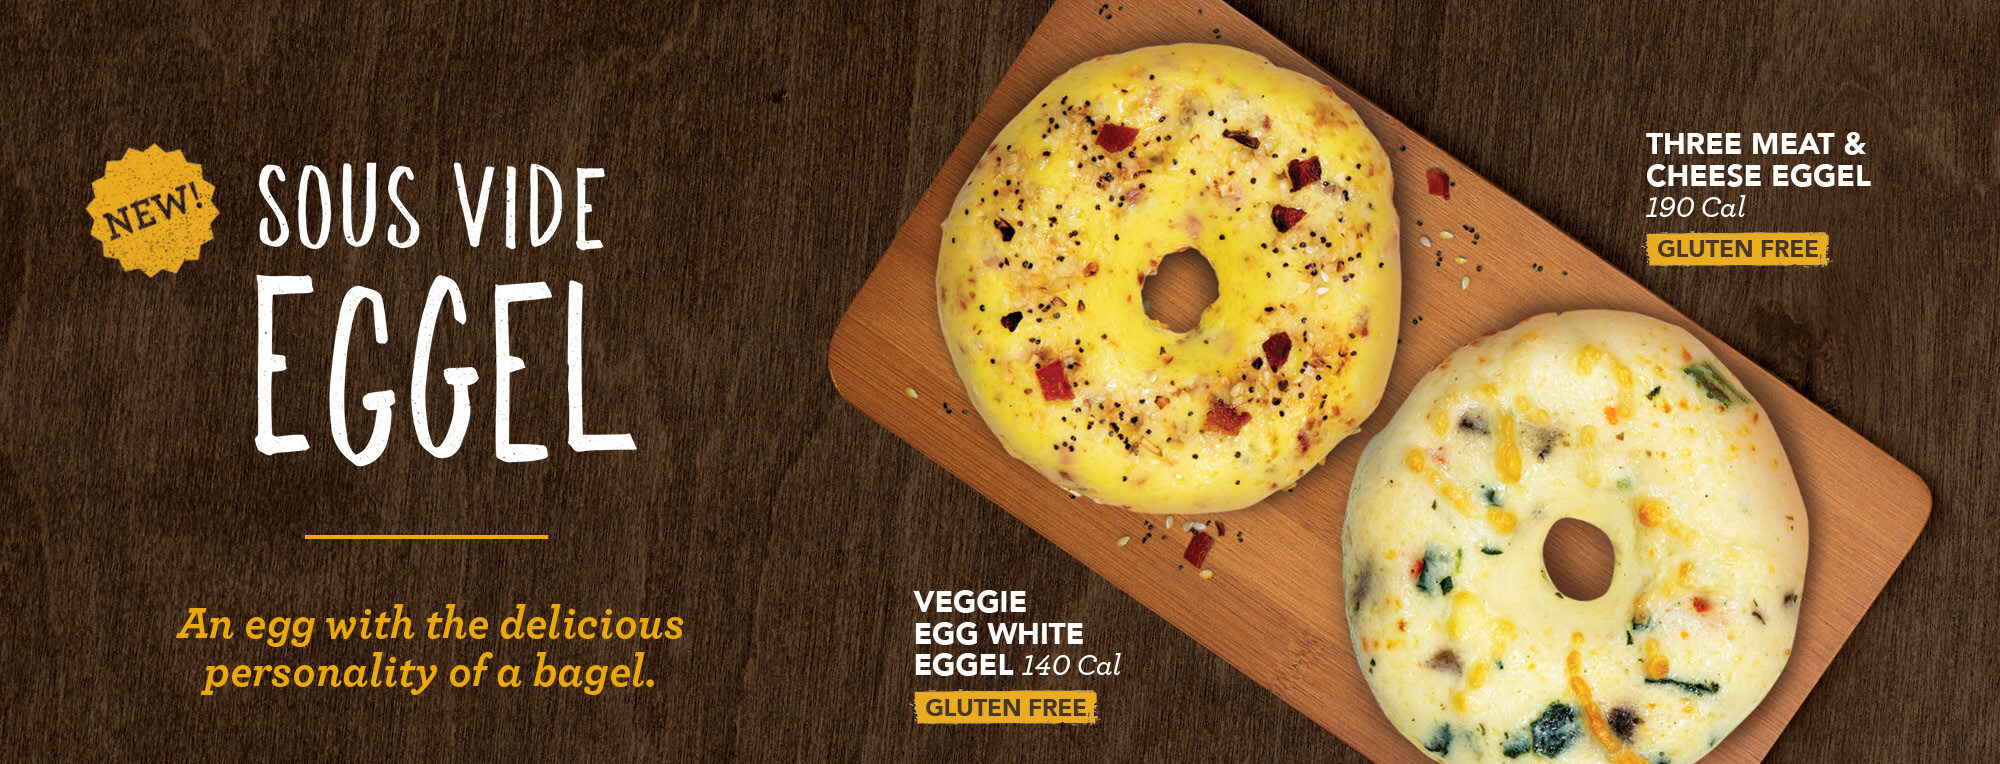 ROTATING SLIDER: Try our new Eggels - 2 Flavors, 3 Meat & Cheese or the Veggie Egg White! Click to download our app.